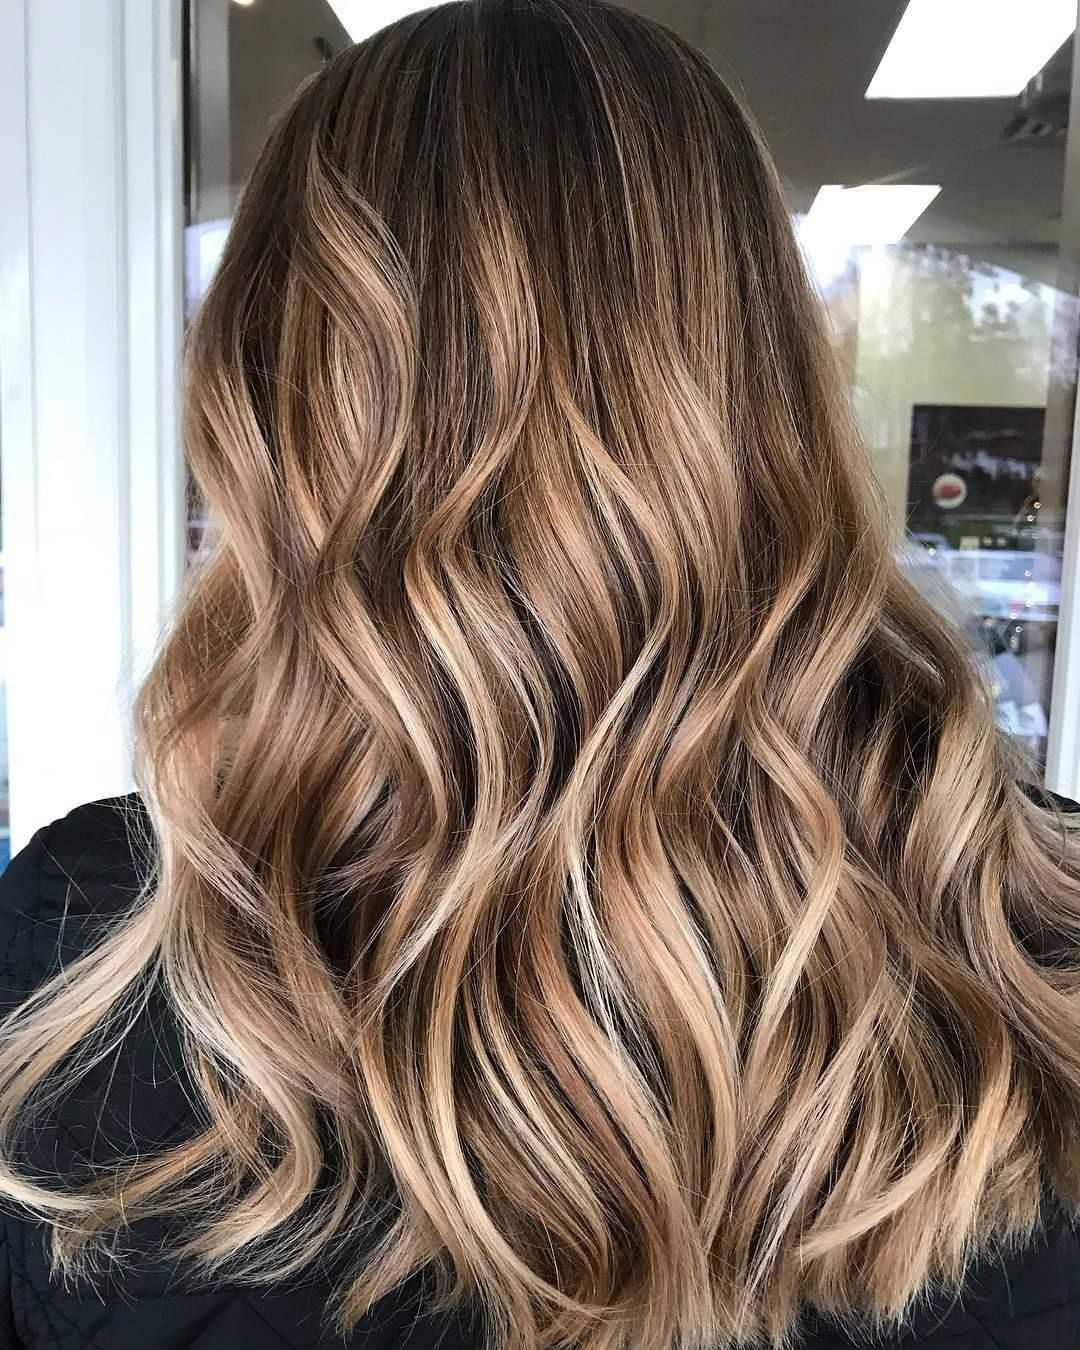 30 Schone Balayage Frisuren Fur 2020 In 2020 Haar Styling Balayage Frisur Hair Lights